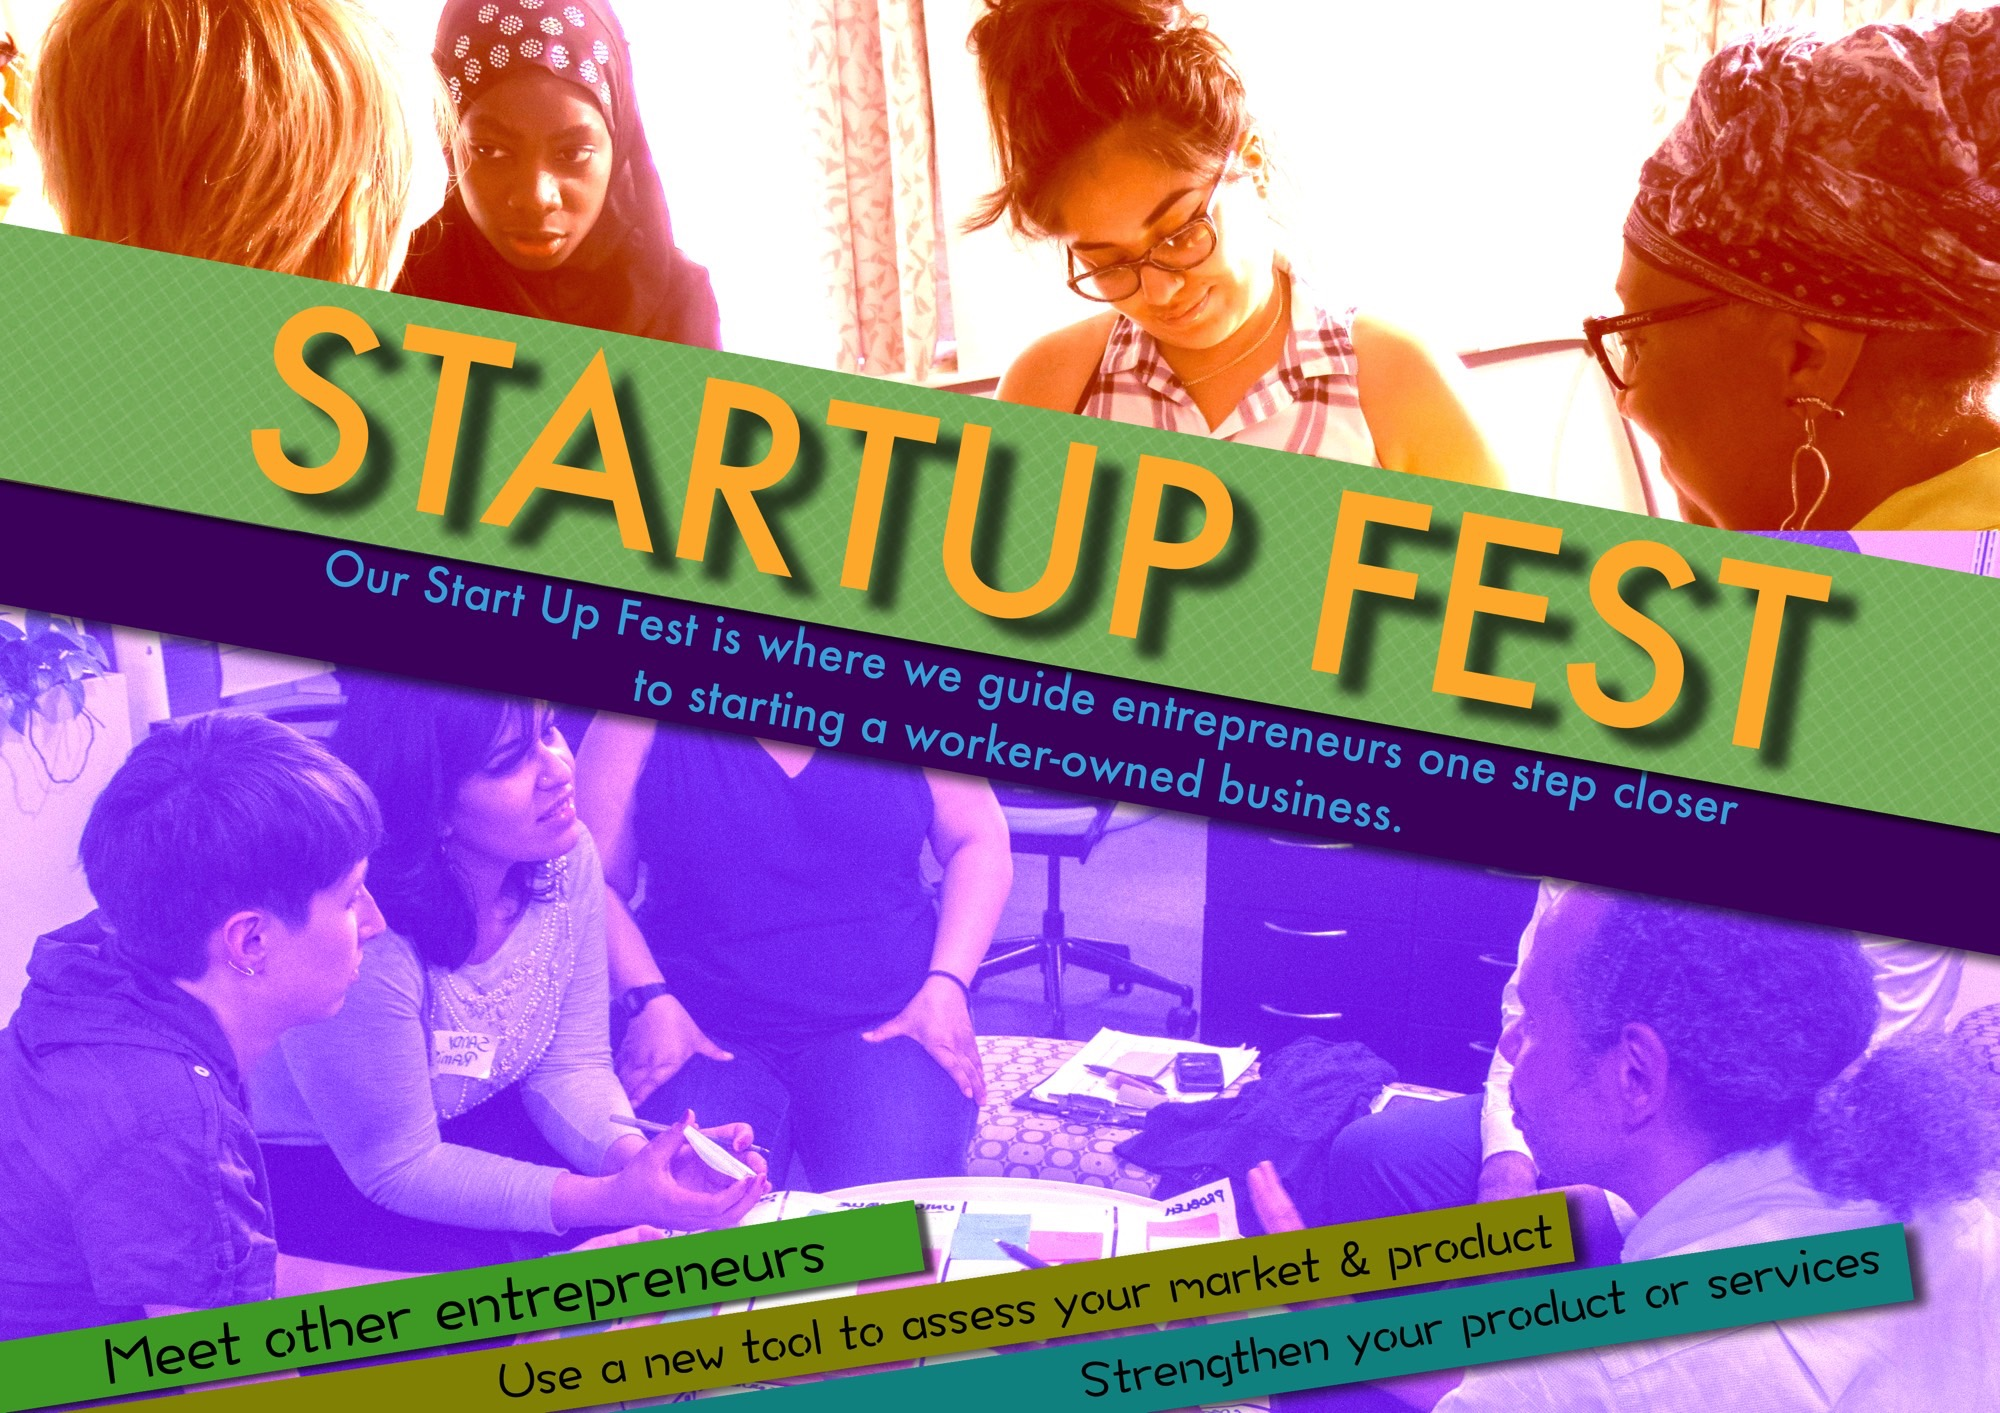 simpleSTARTUPFEST_FLYER_meme_resized.jpeg